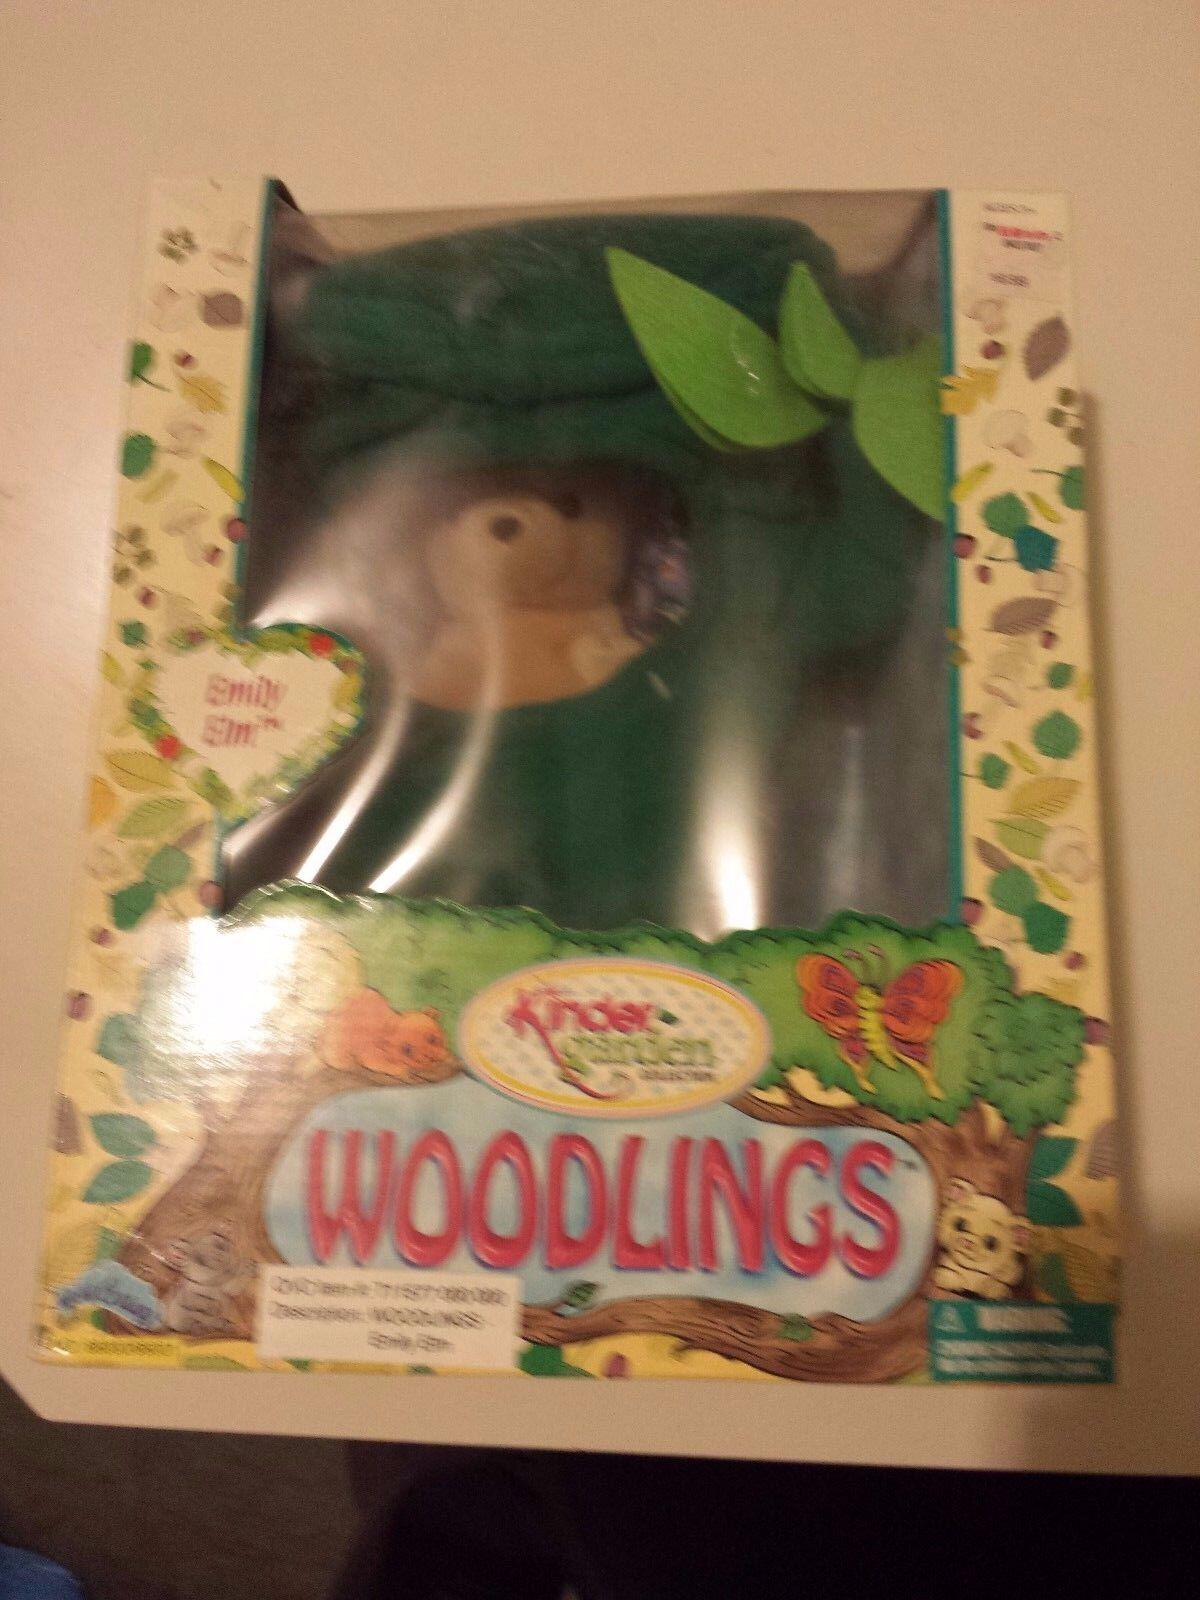 RARE VINTAGE LOT KINDERGARDEN BABIES COLLECTION  WOODLINGS EMILY ELM MIB NRFB